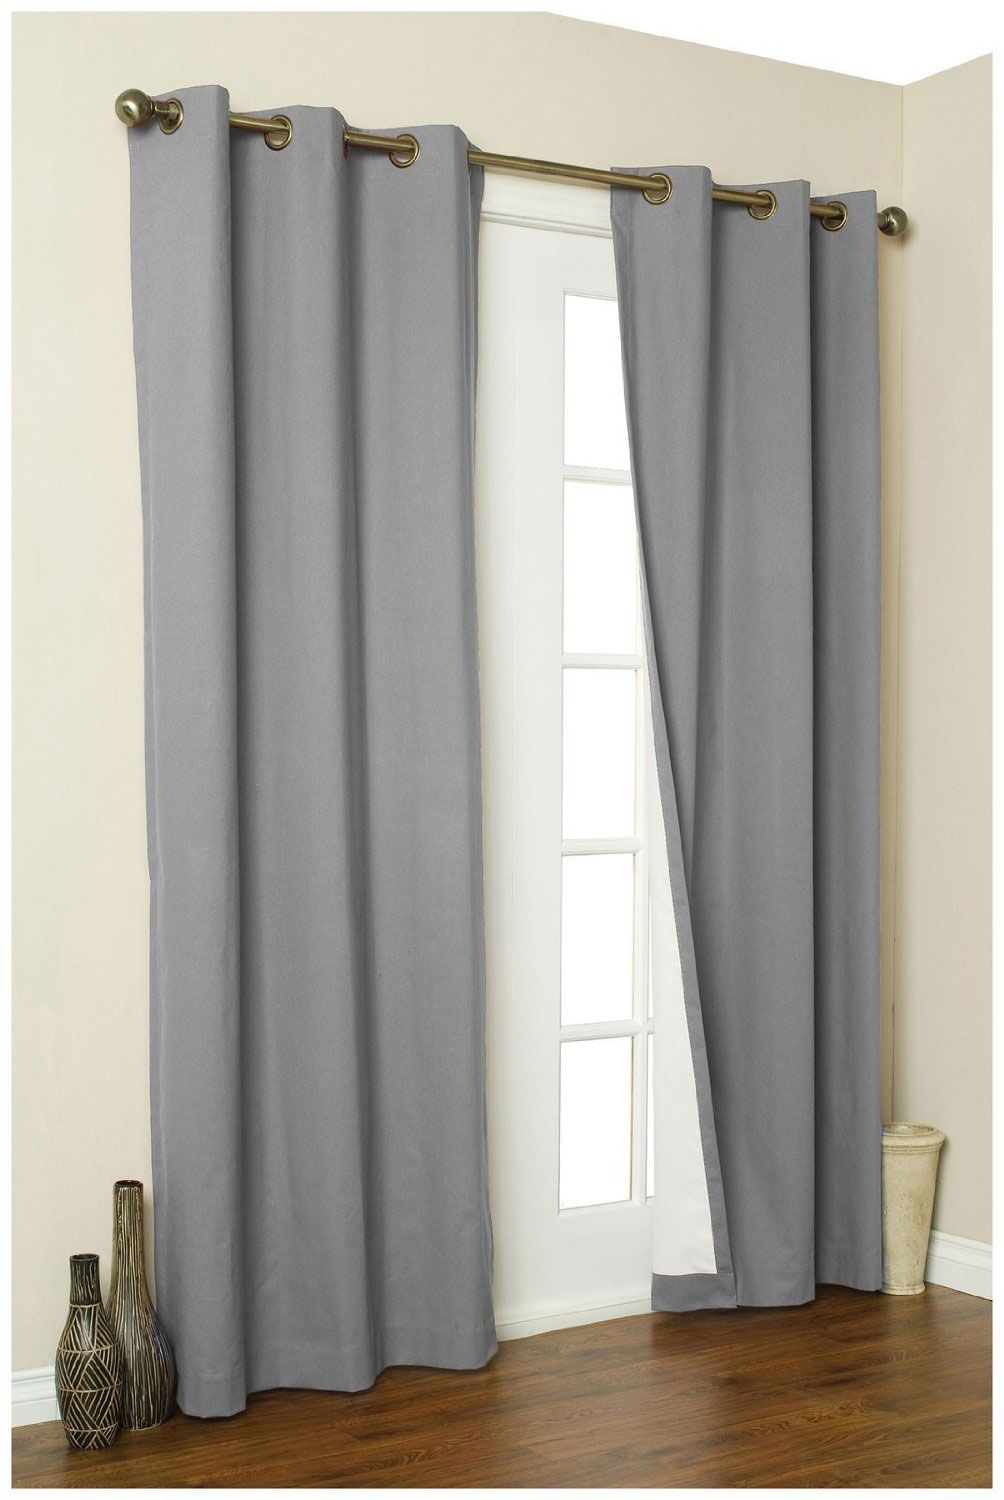 french door curtain ideas: simple grommet curtains for french door